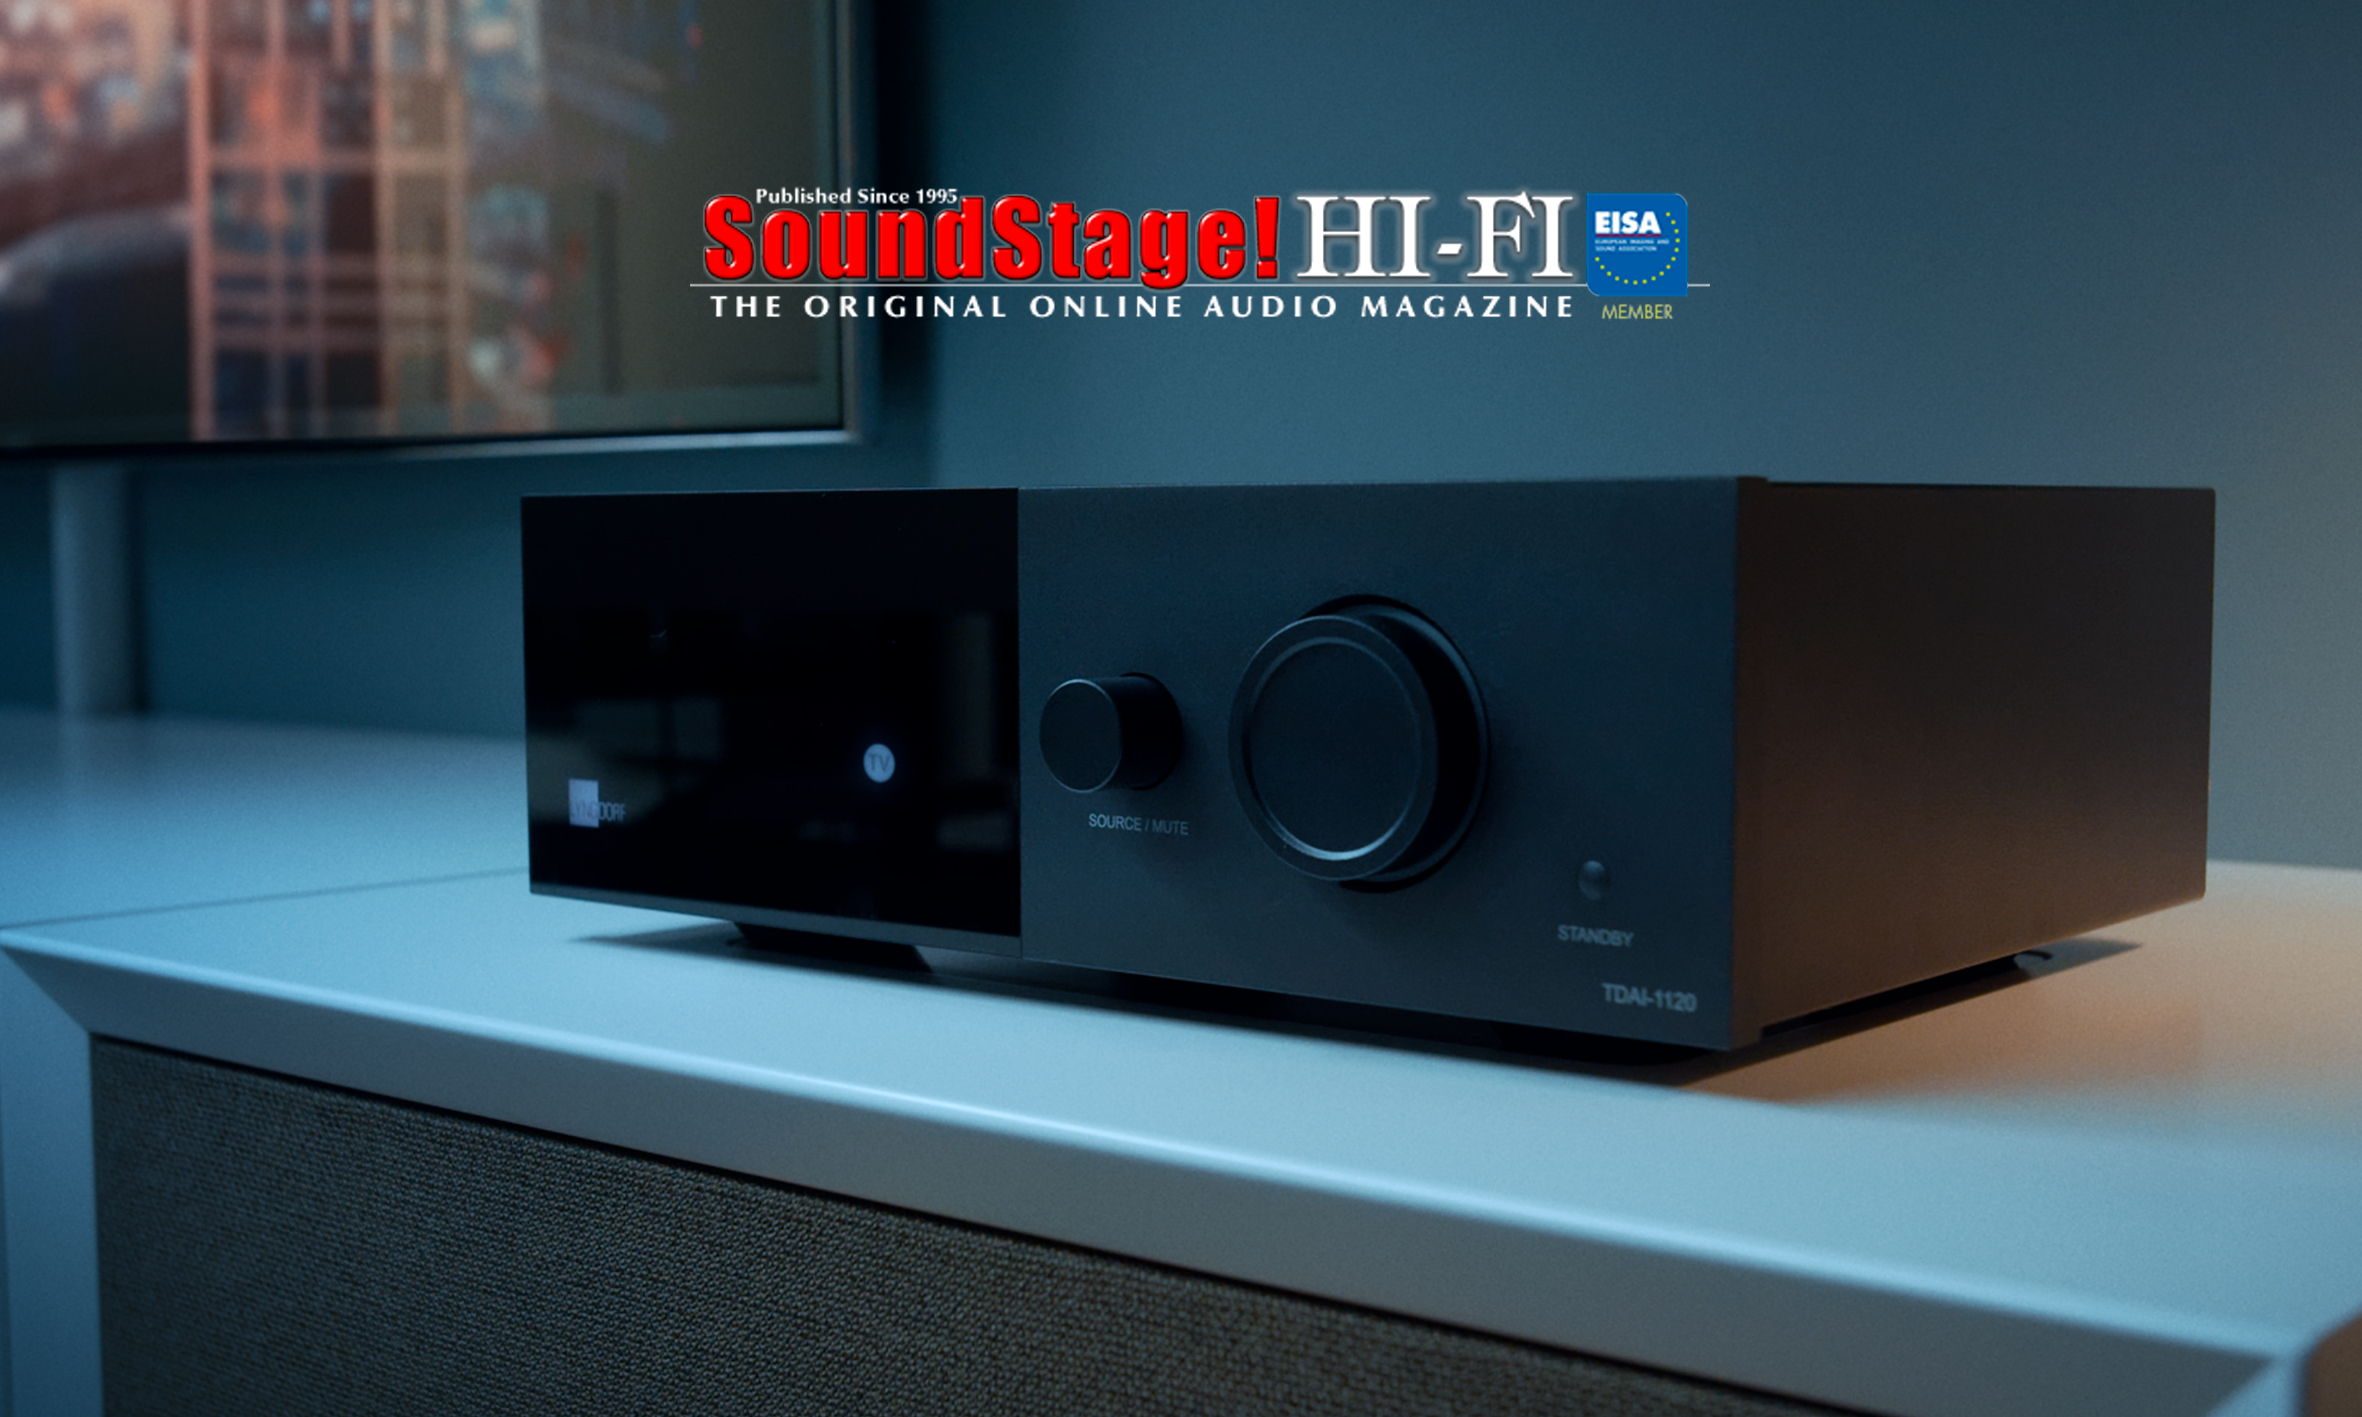 TDAI-1120 streaming amplifier